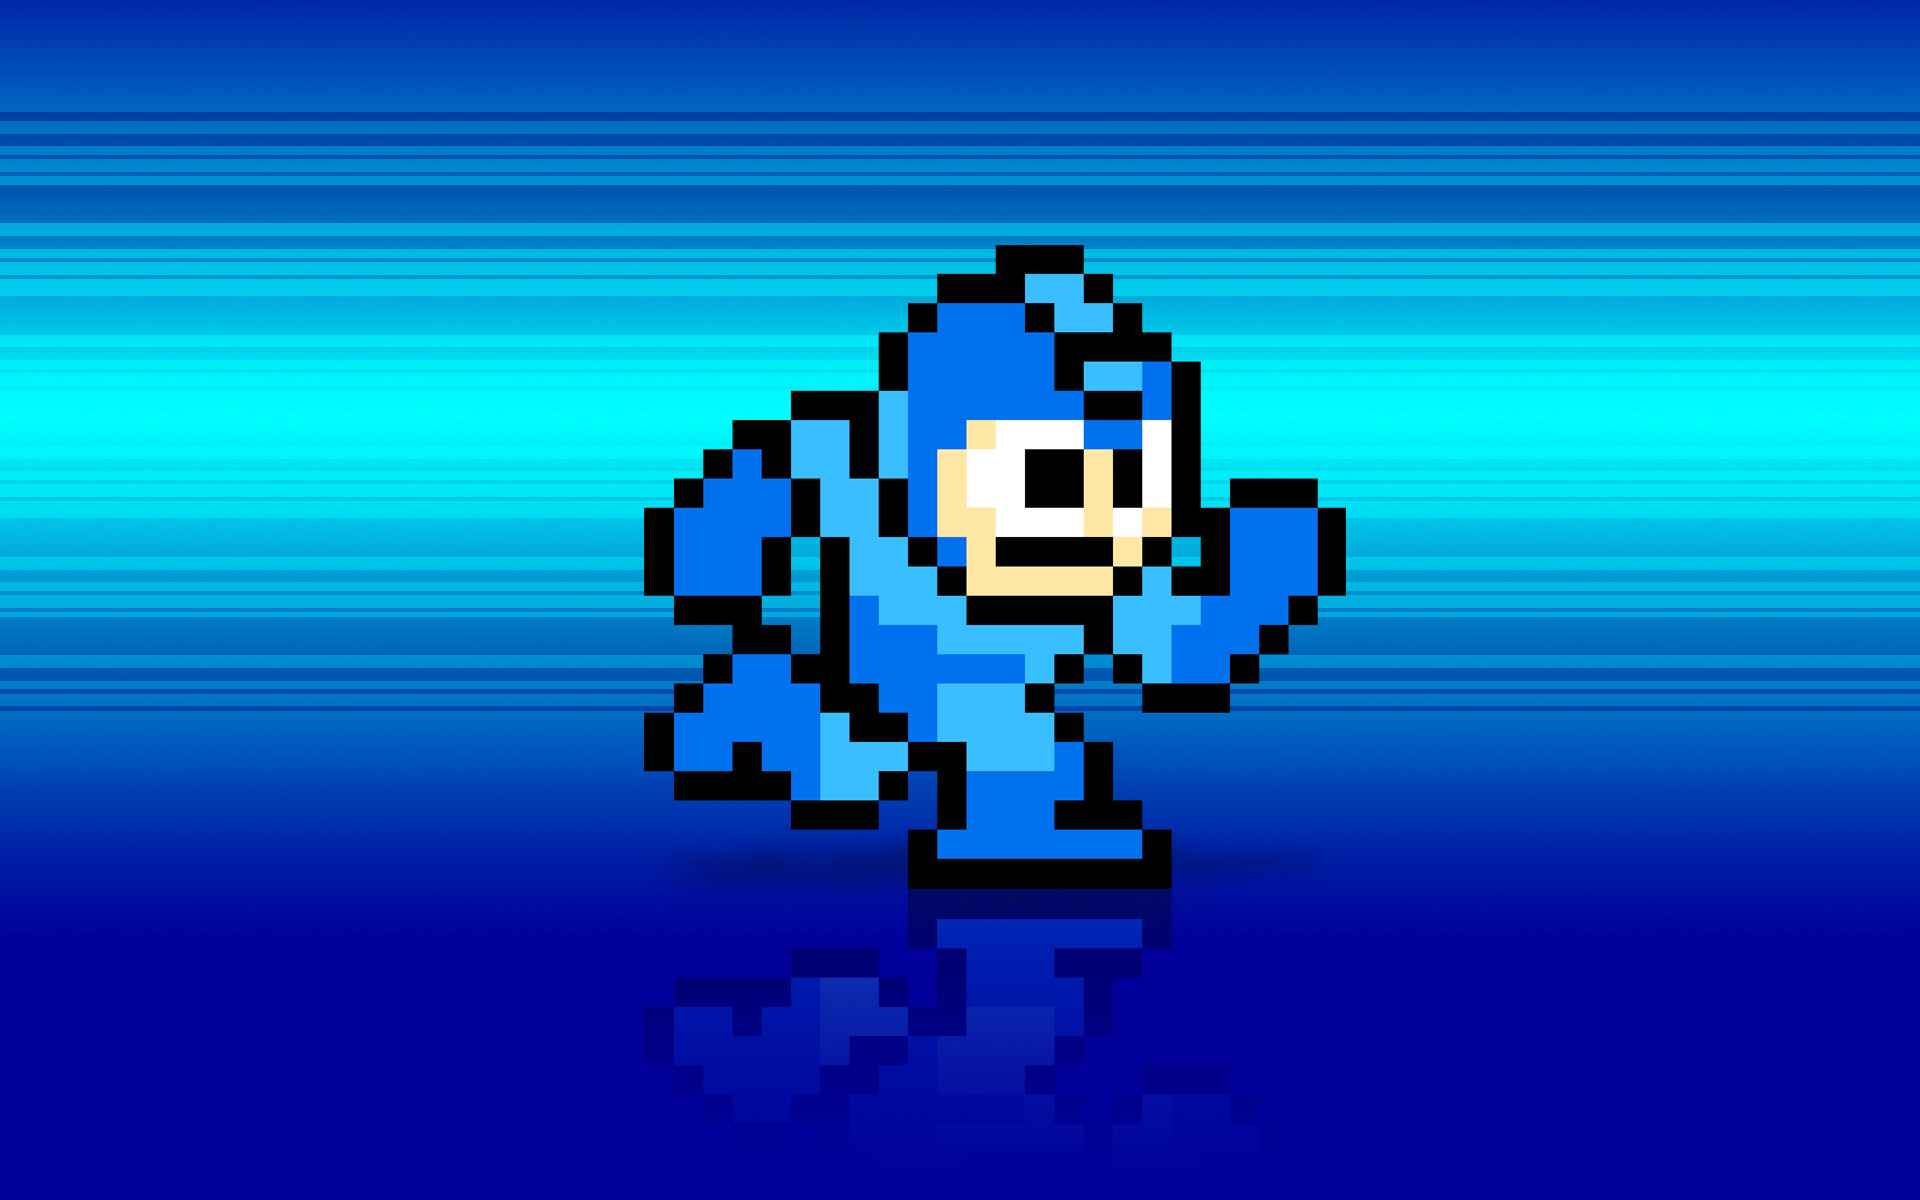 Original 6 Mega Man games coming to mobile devices